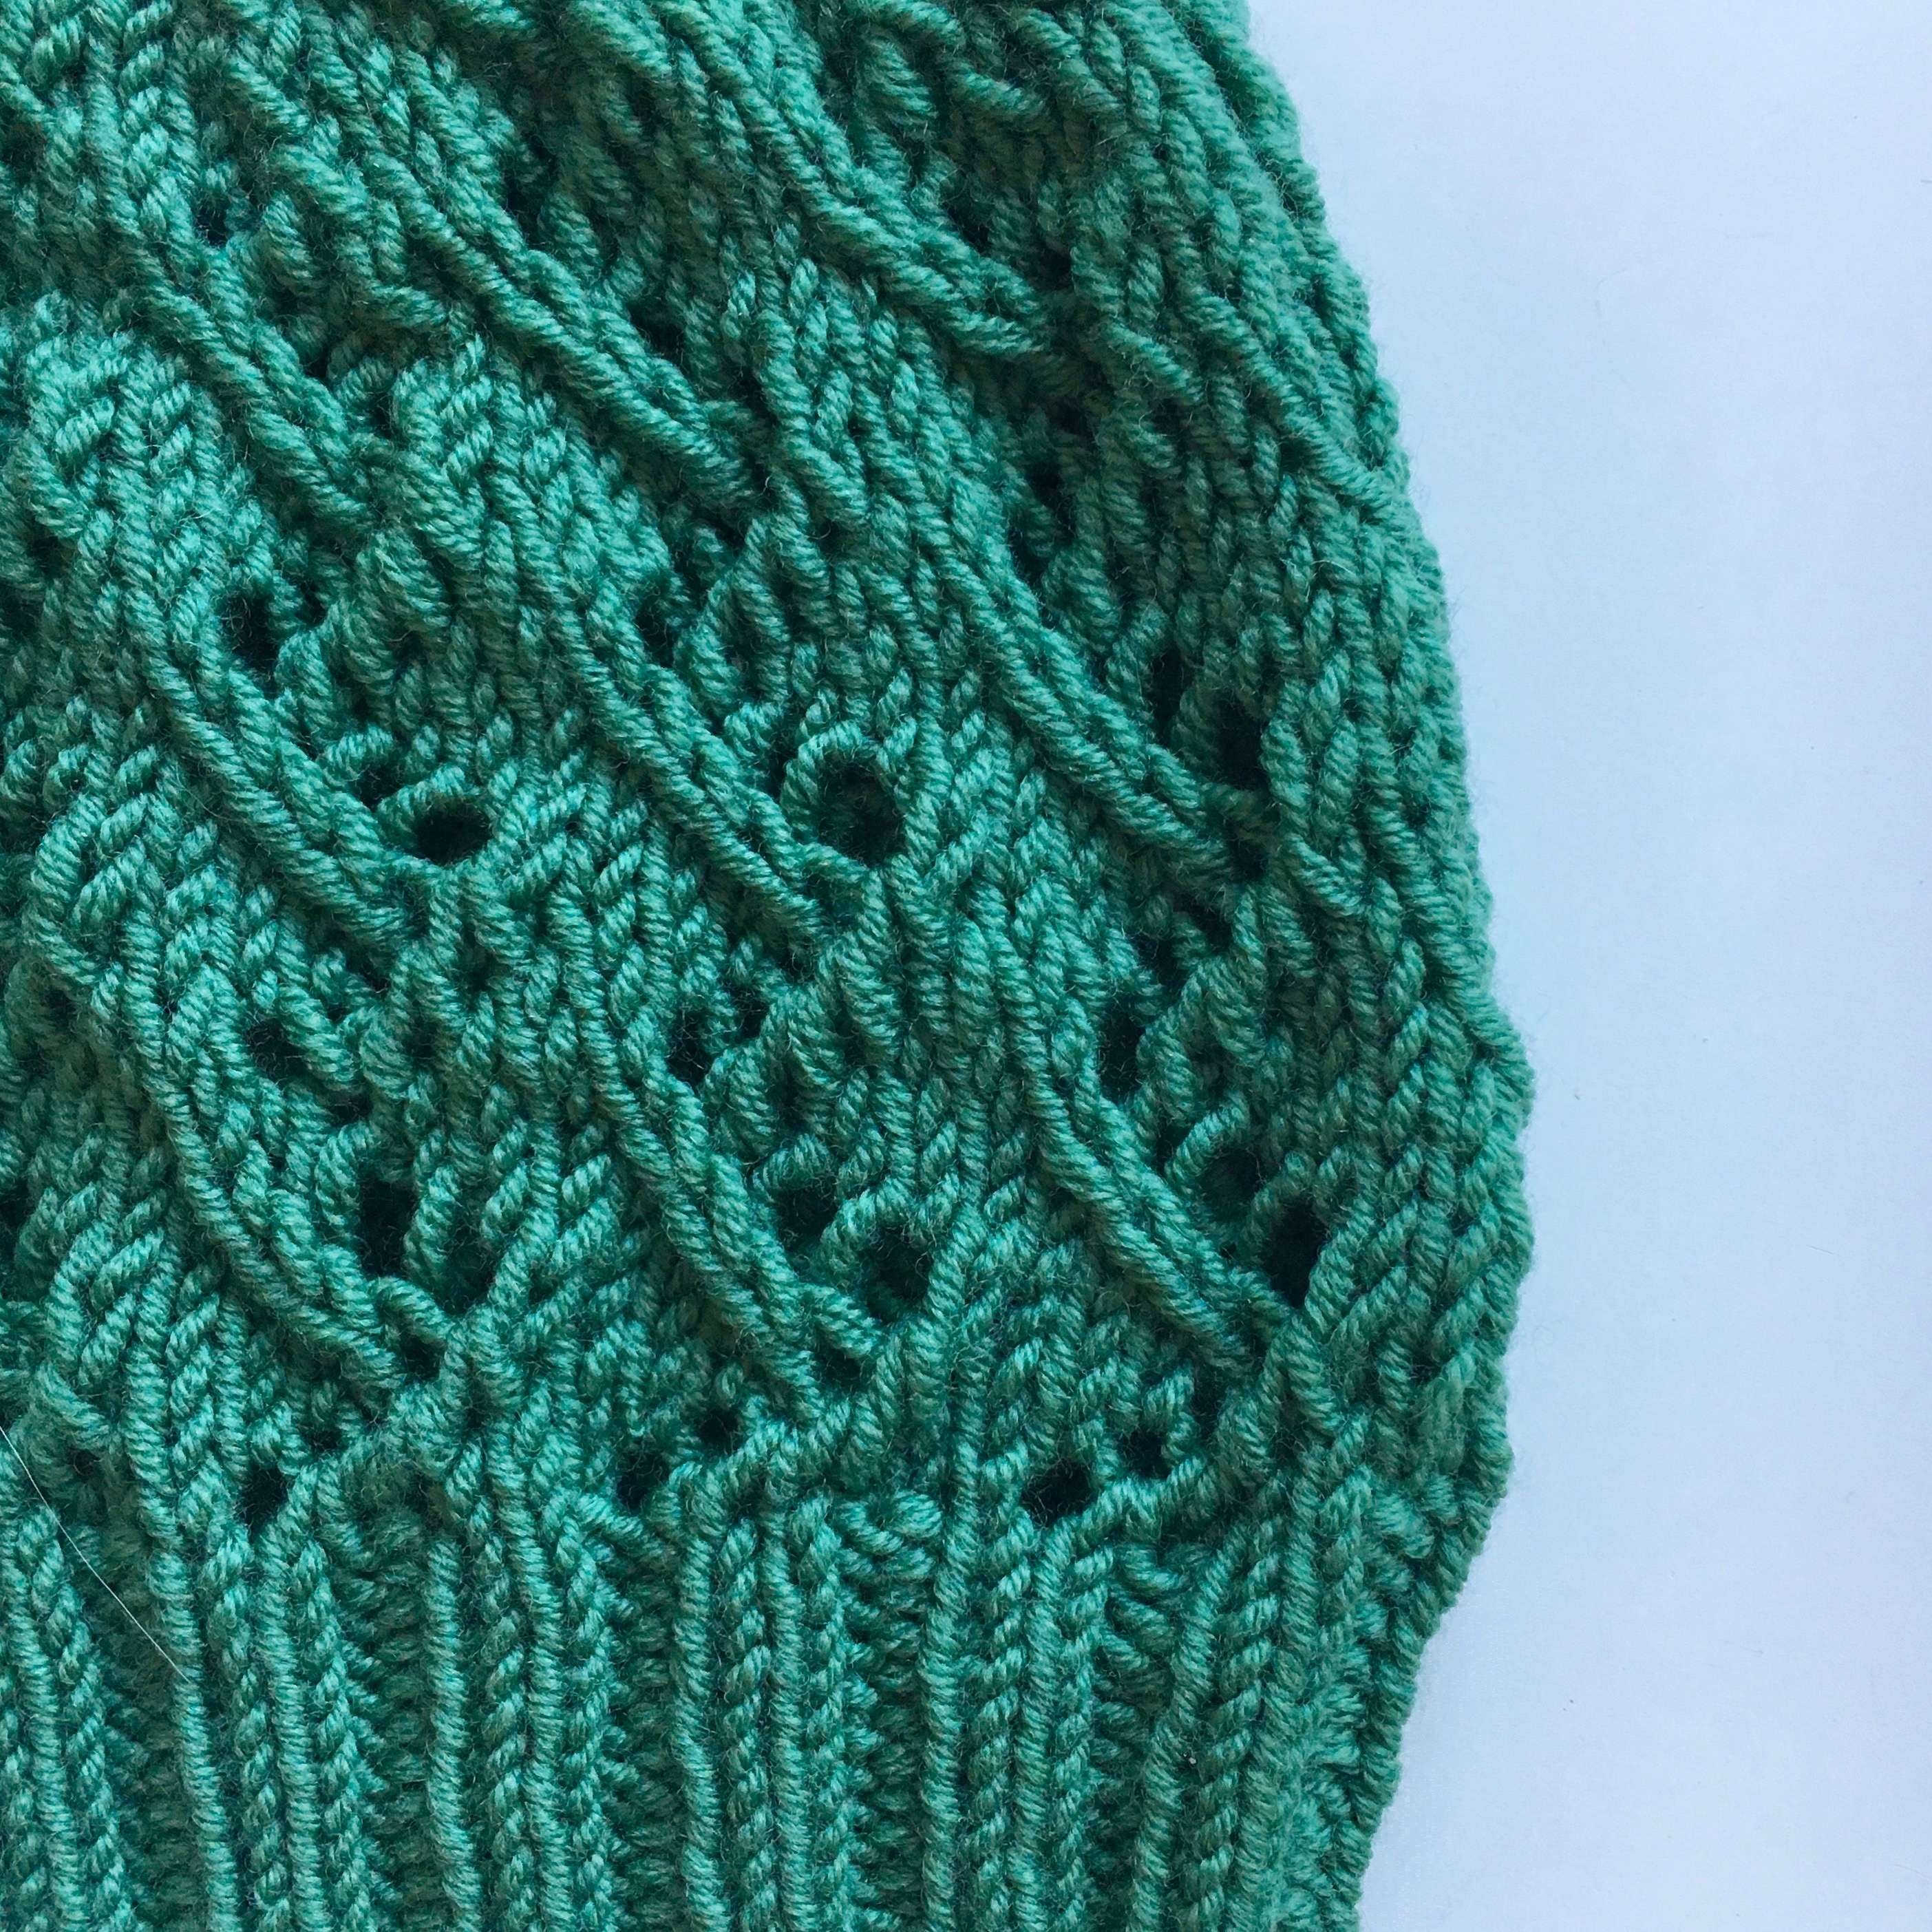 Knitting gifts: fingerless mitts and a lace beanie